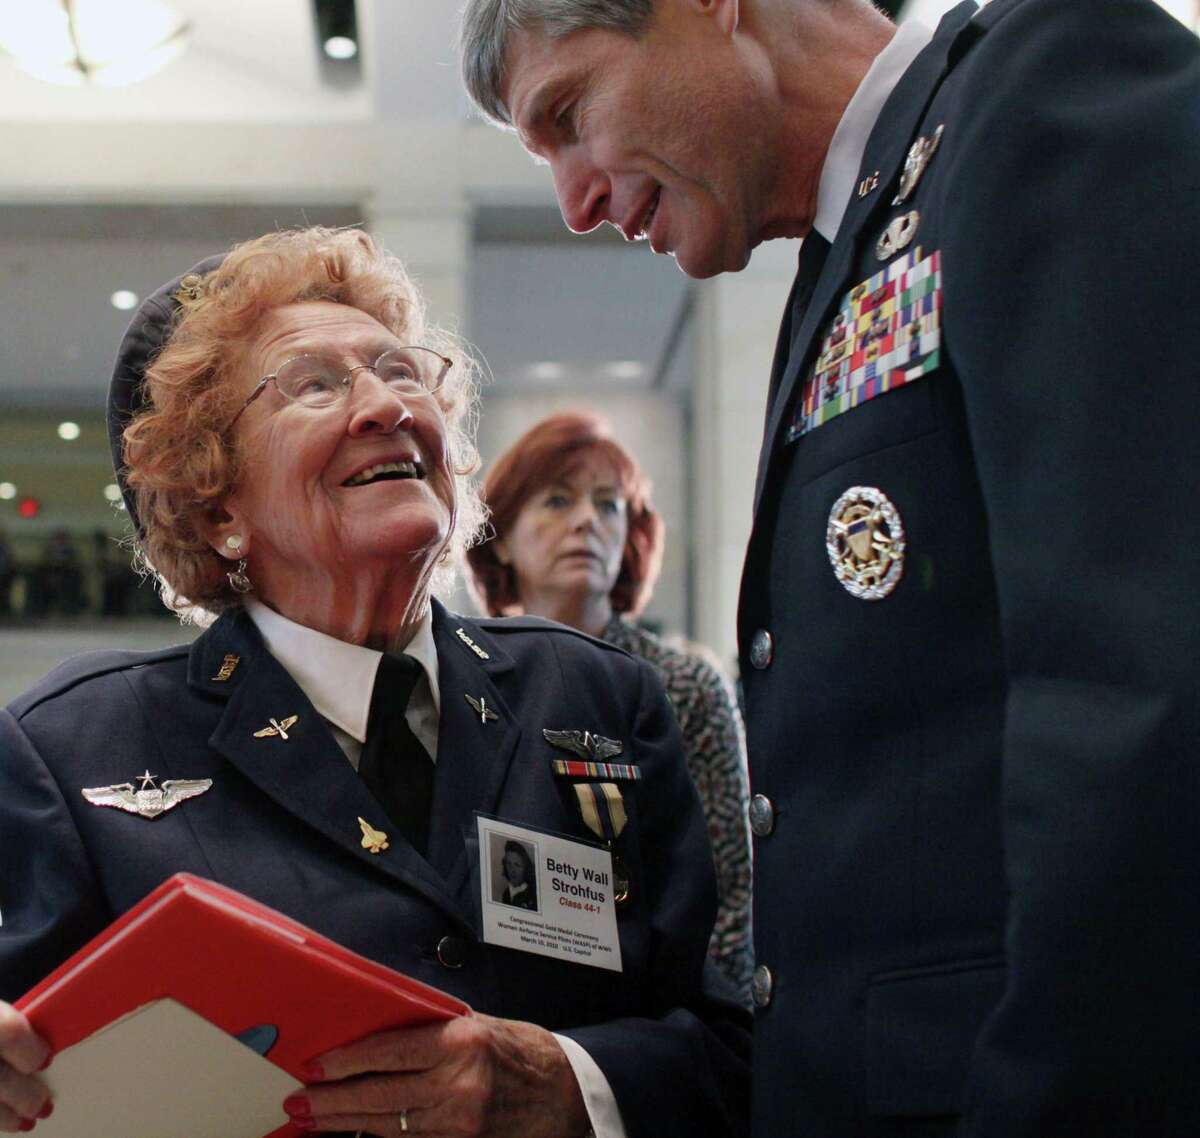 In this March 10, 2010 file photo, Air Force Chief of Staff Gen. Norton Schwartz greets Elizabeth Strohfus of Faribault, Minn., on Capitol Hill in Washington, before she and other members of the Women Airforce Service Pilots were awarded the Congressional Gold Medal.